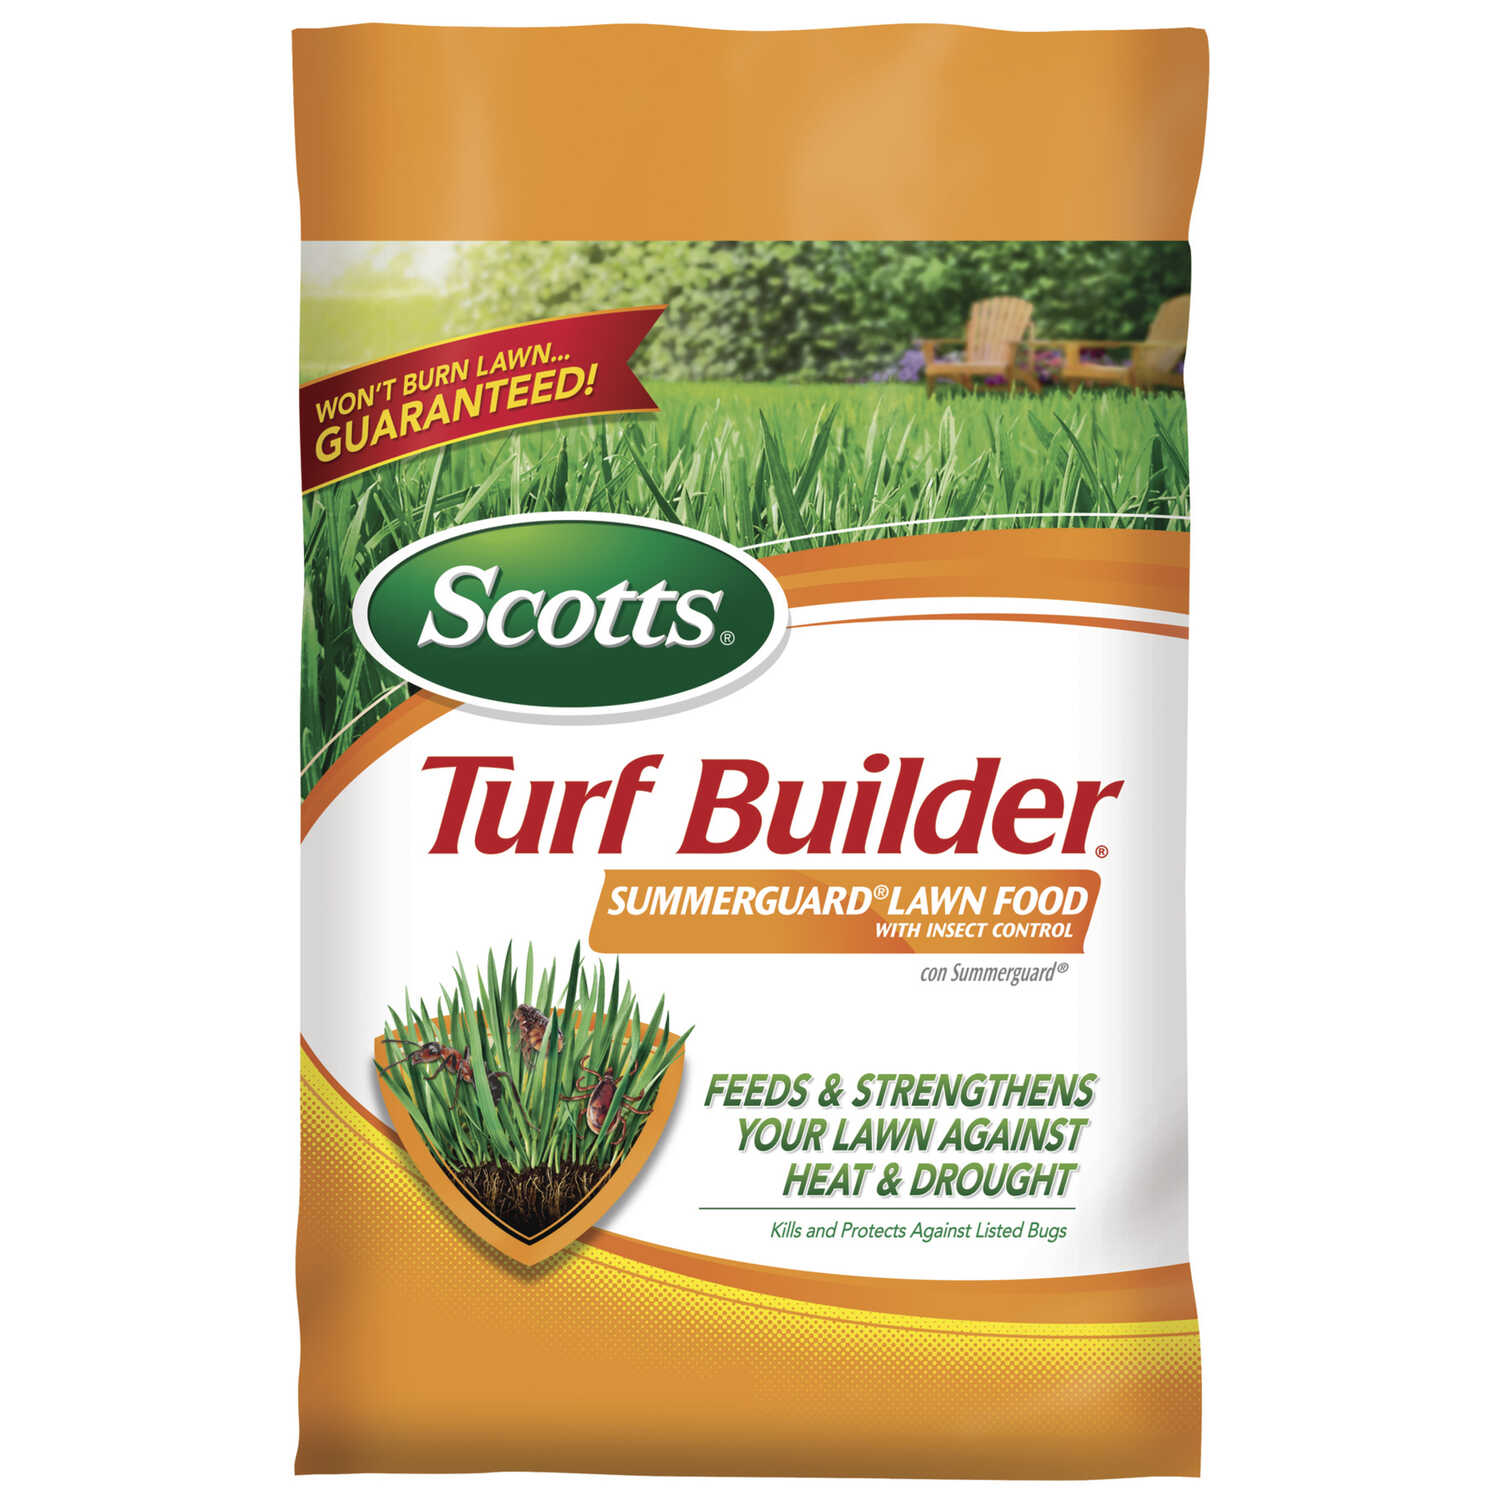 Scotts  Turf Builder Summerguard  20-0-8  Lawn Fertilizer  For All Grass Types 14 lb. 5000 sq. ft.